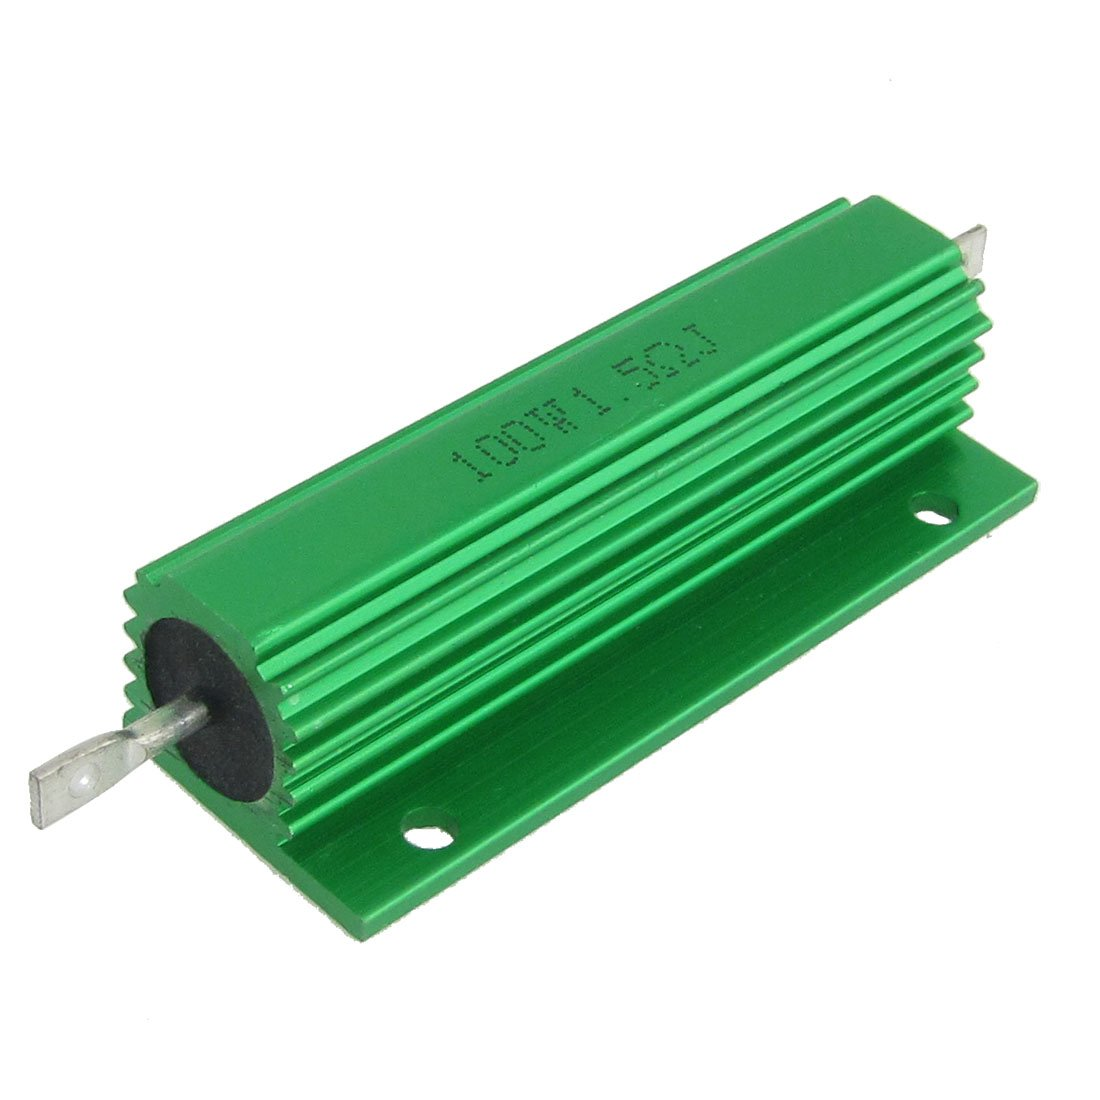 2 Pcs Chasis Mounted Green Aluminum Clad Wirewound Resistors 100W 1.5 Ohm 5% Sourcingmap a12042100ux0247